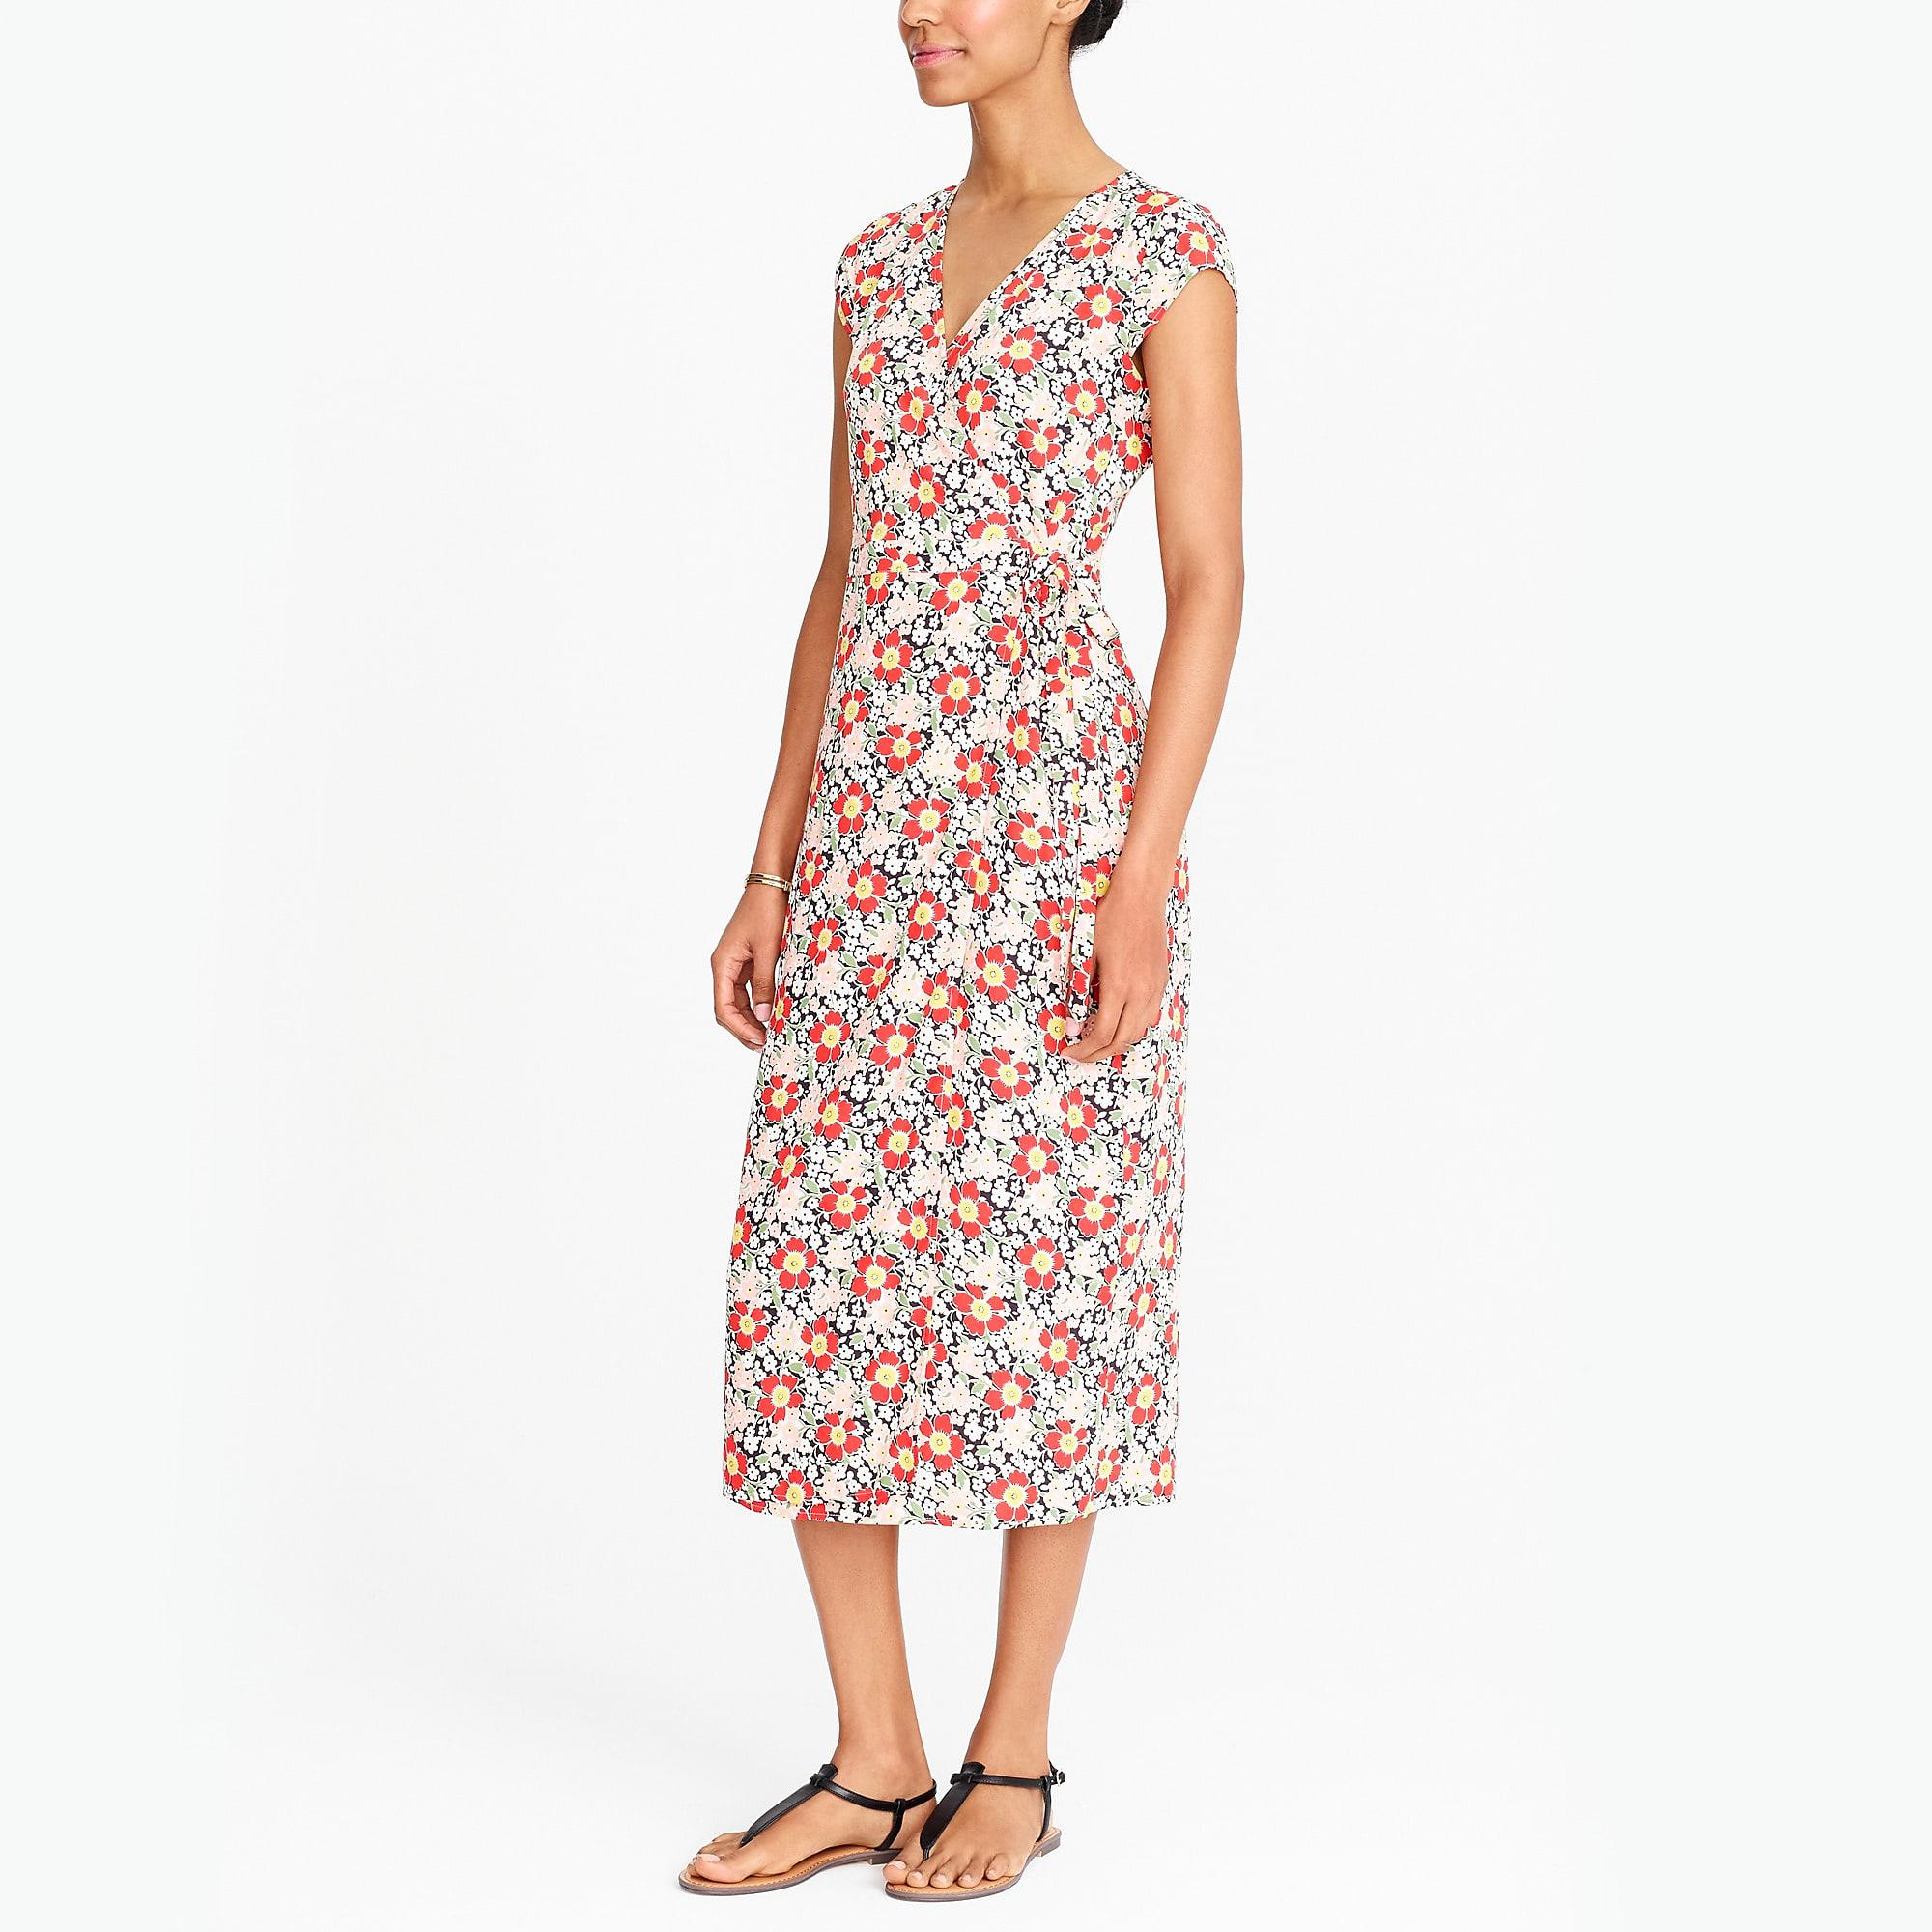 810f5b25c Gallery. Previously sold at: J.Crew Factory · Women's Wrap Dresses